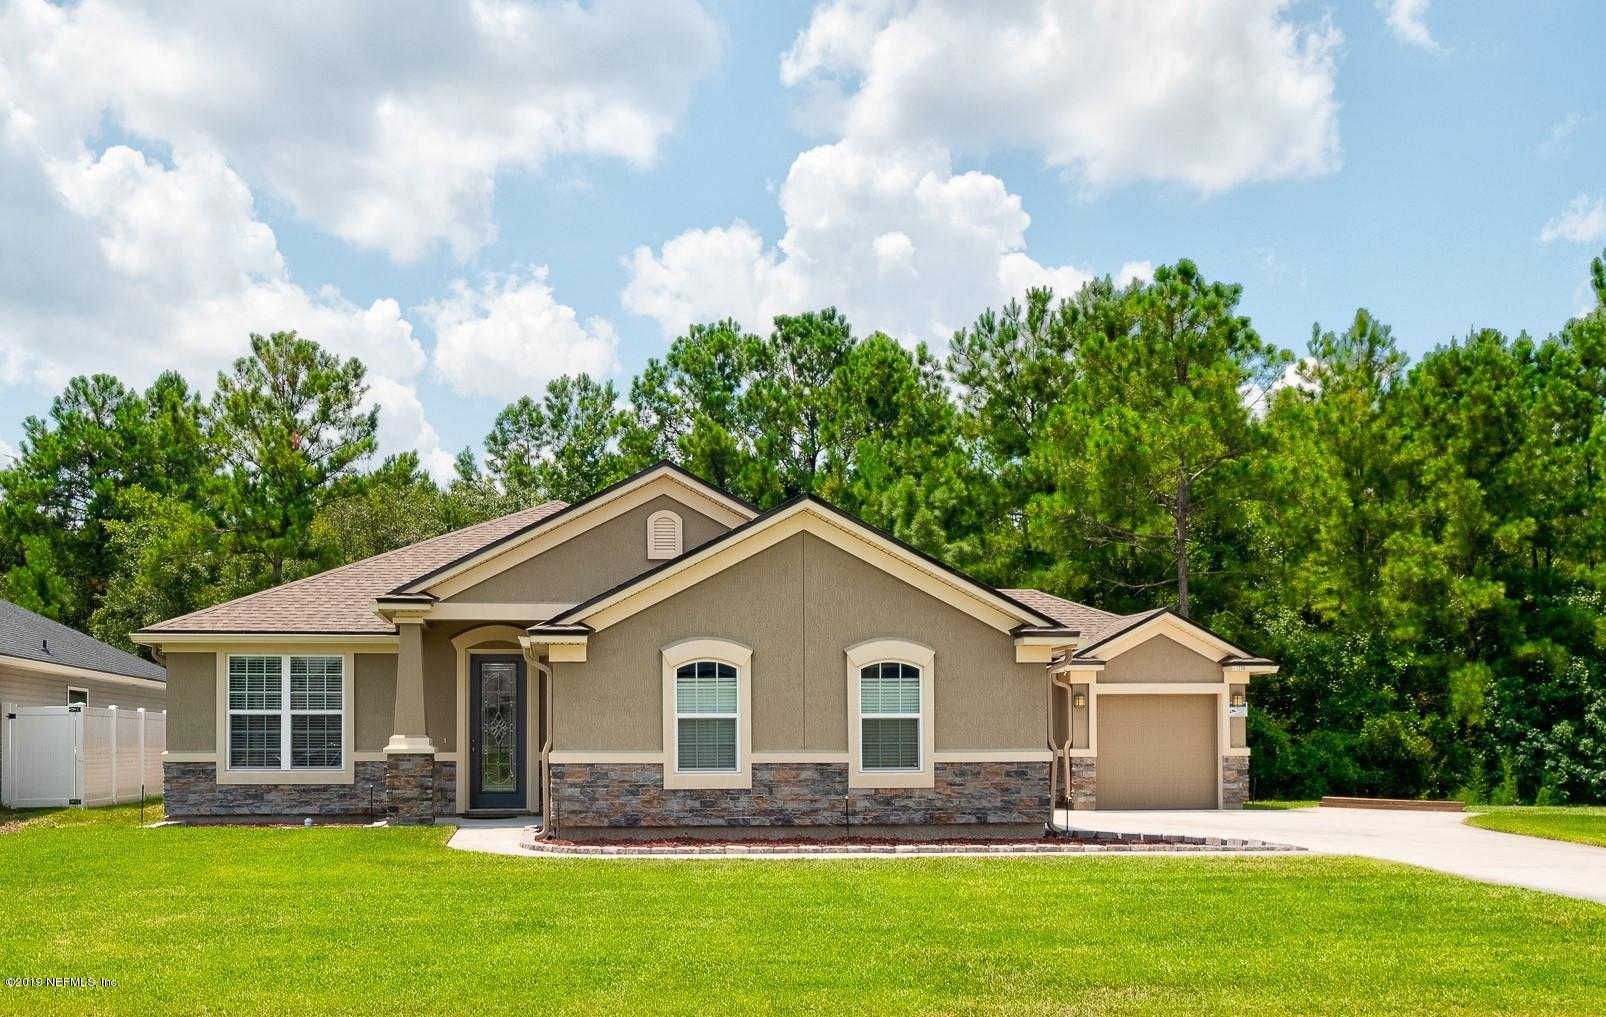 1236 Royal Dornoch Dr, Jacksonville, FL 32221 is now new to the market!